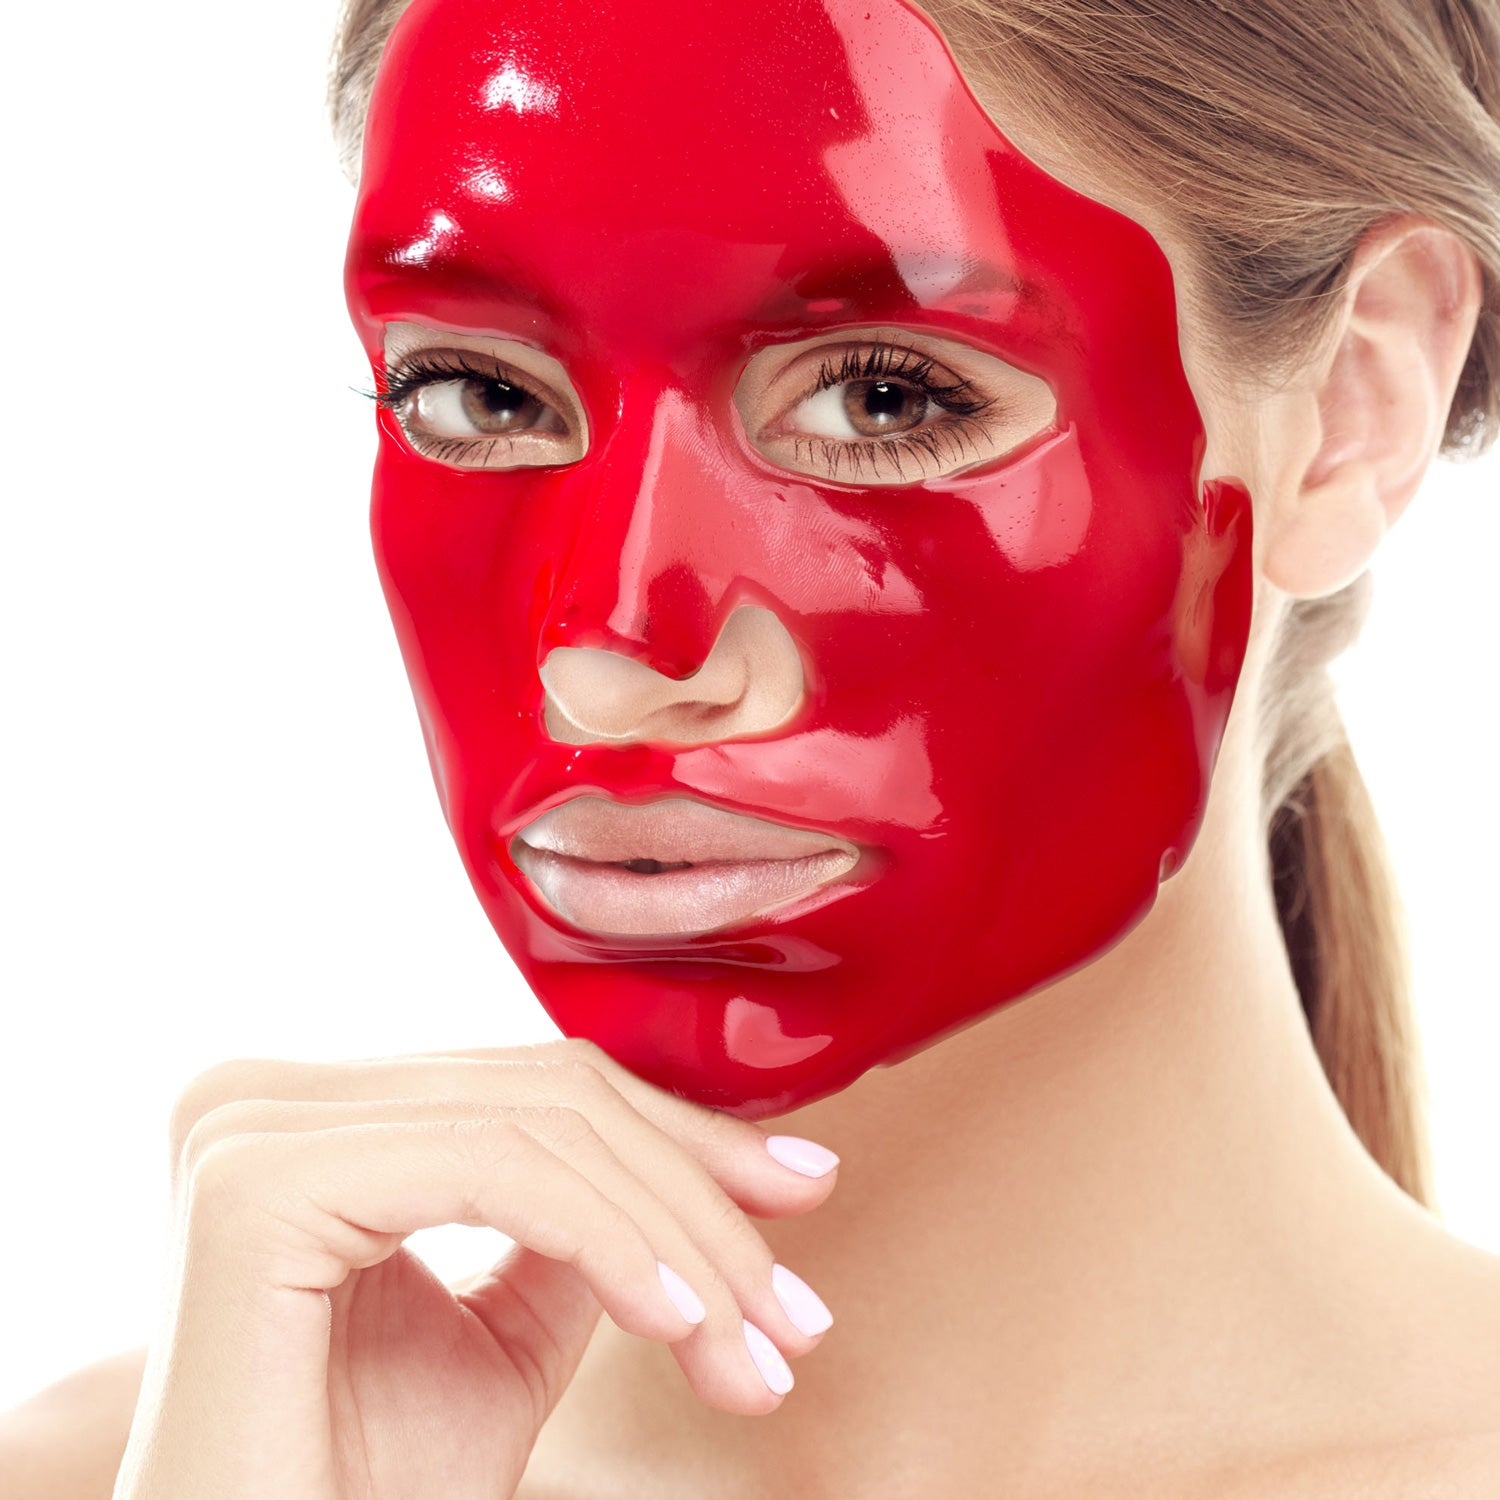 18-in-1 Red Caviar Anti-Aging Face & Eye Mask Set (1 Year Supply)